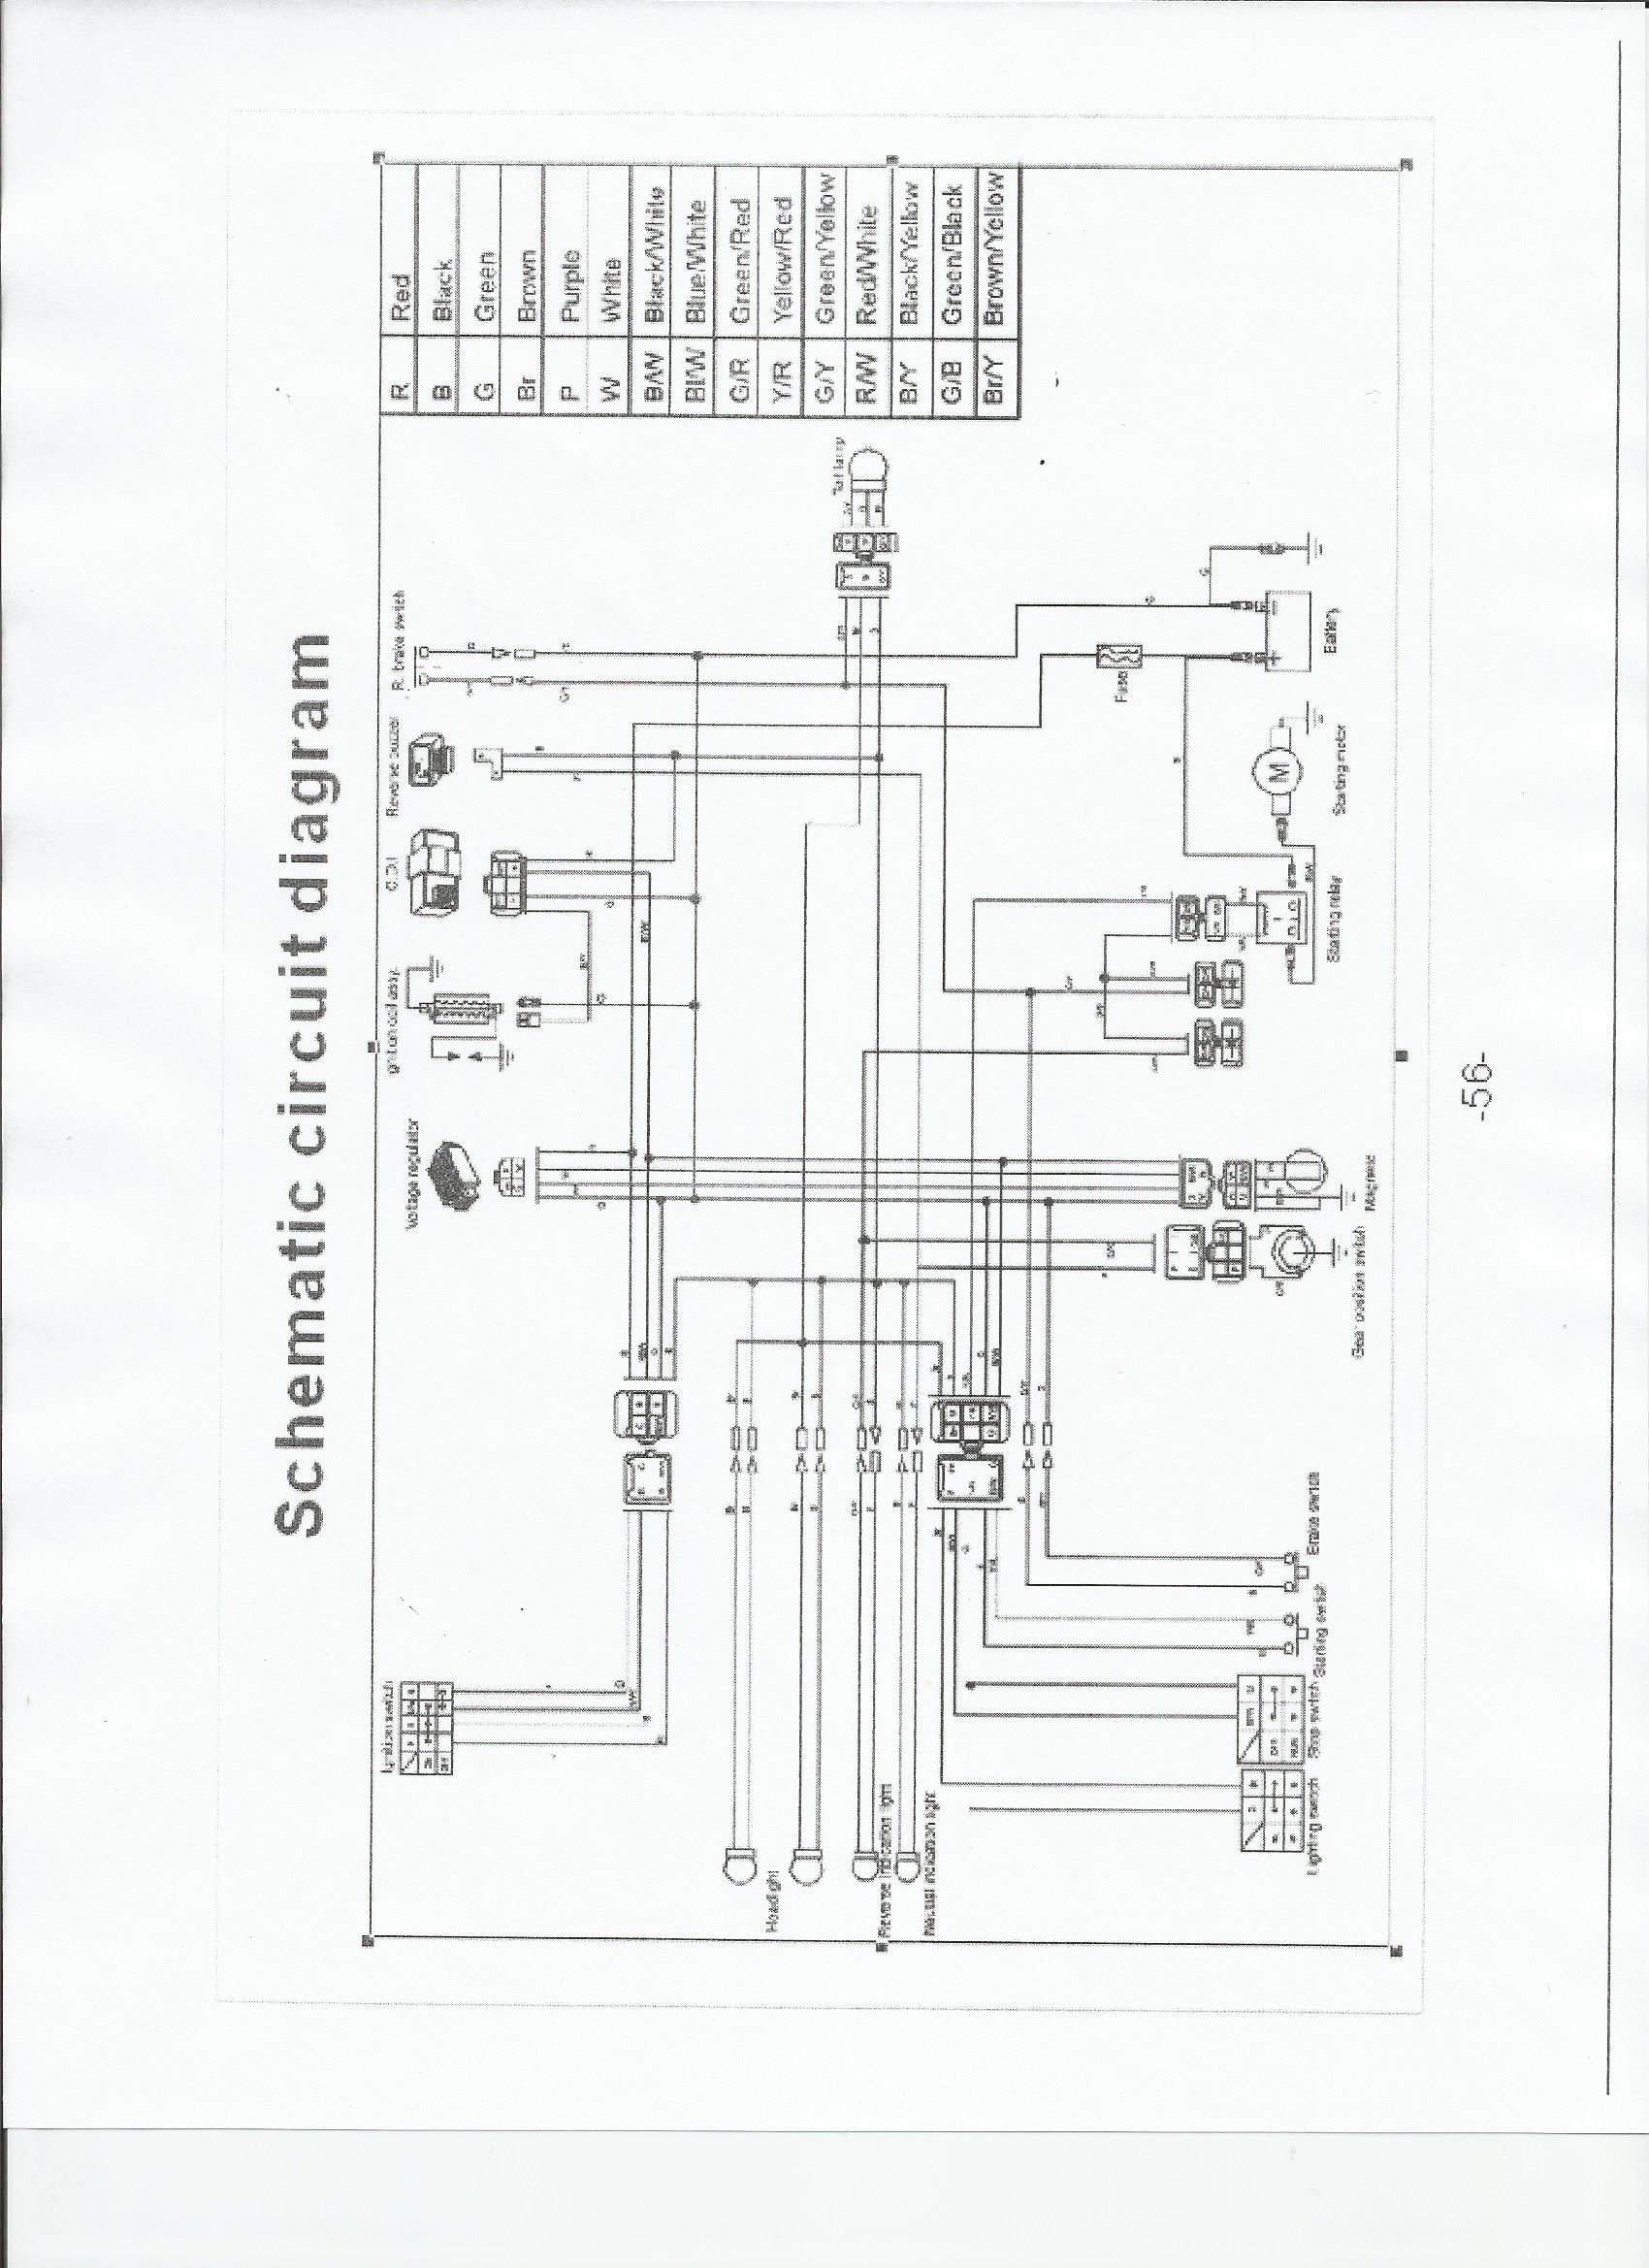 400ex wiring diagram schematics and wiring diagrams 400ex wiring issues page 2 honda atv forum